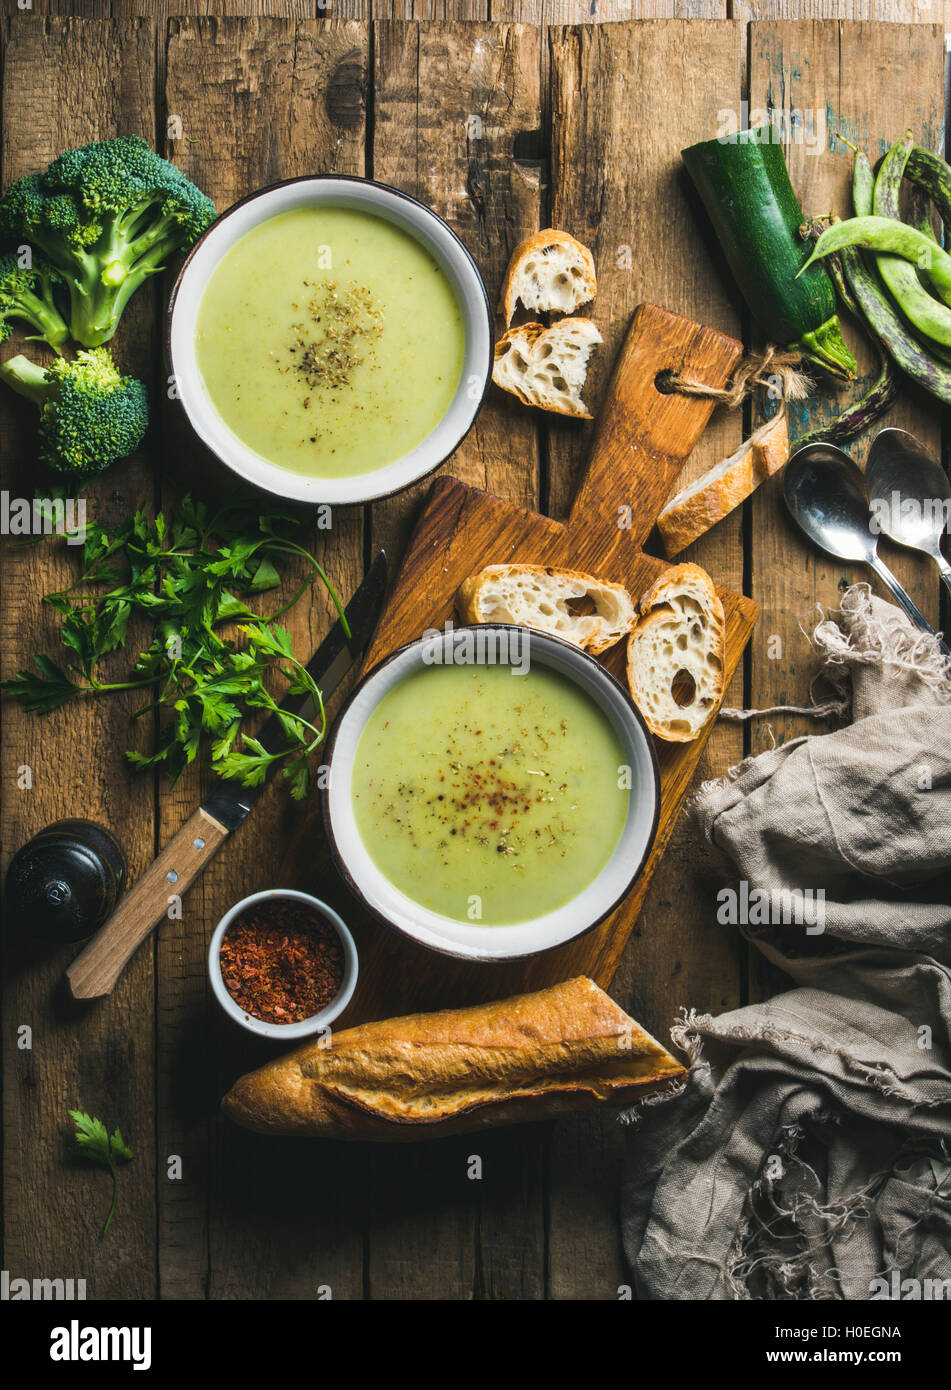 Two bowls of homemade pea, broccoli and zucchini cream soup served with fresh baguette and vegetables on wooden - Stock Image